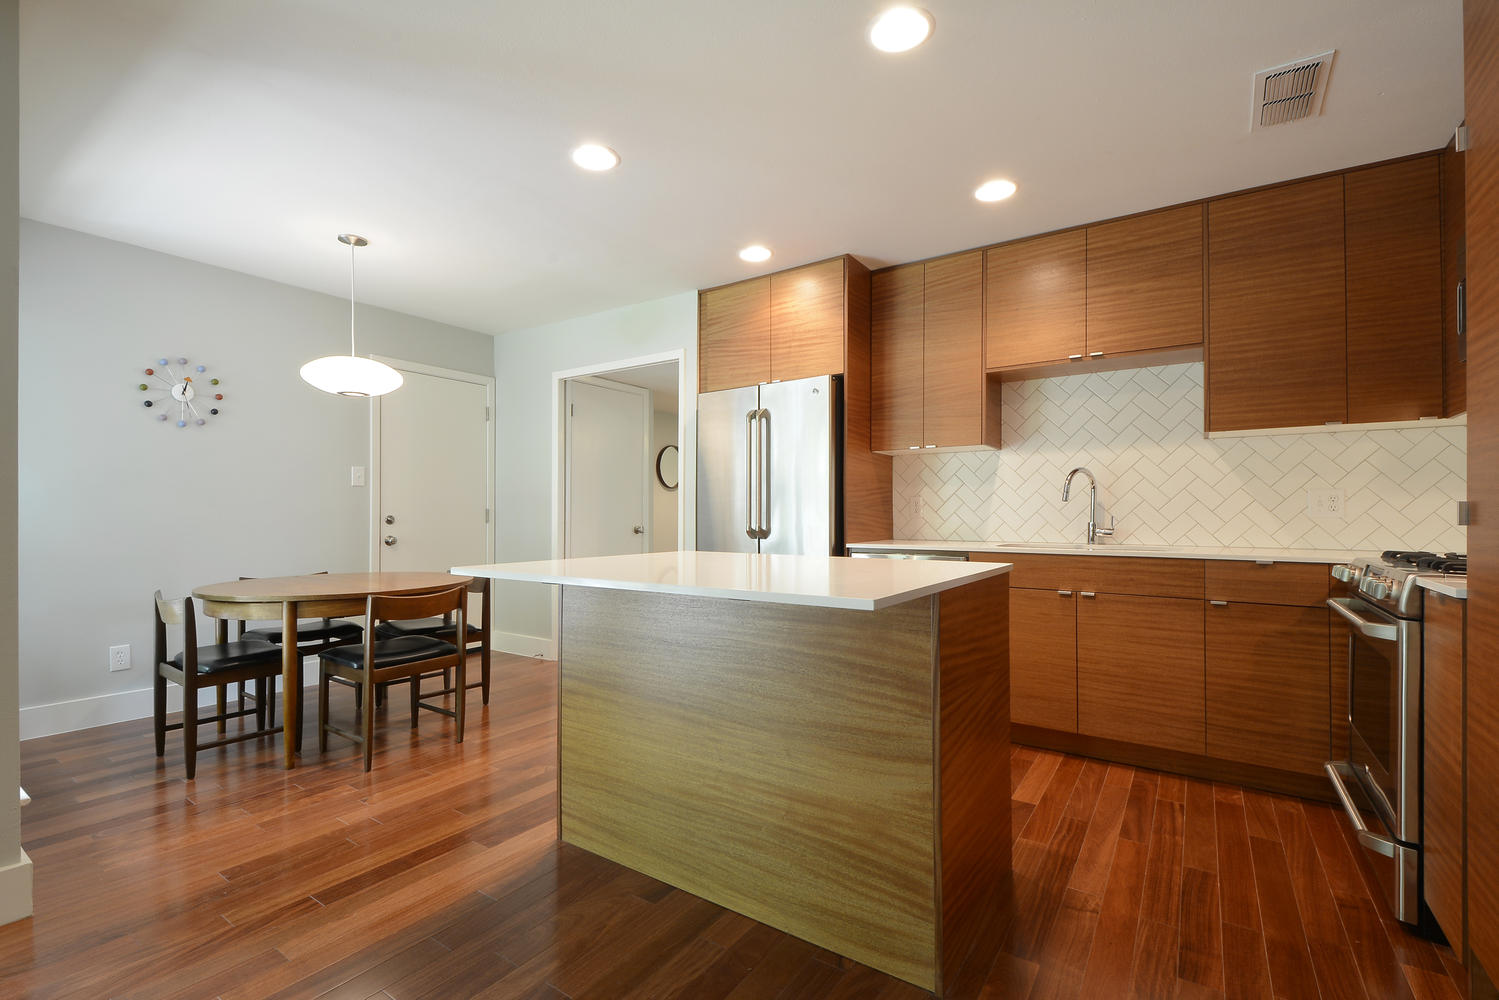 6704 Kings Point West-large-010-Kitchen and Breakfast 362-1499x1000-72dpi.jpg